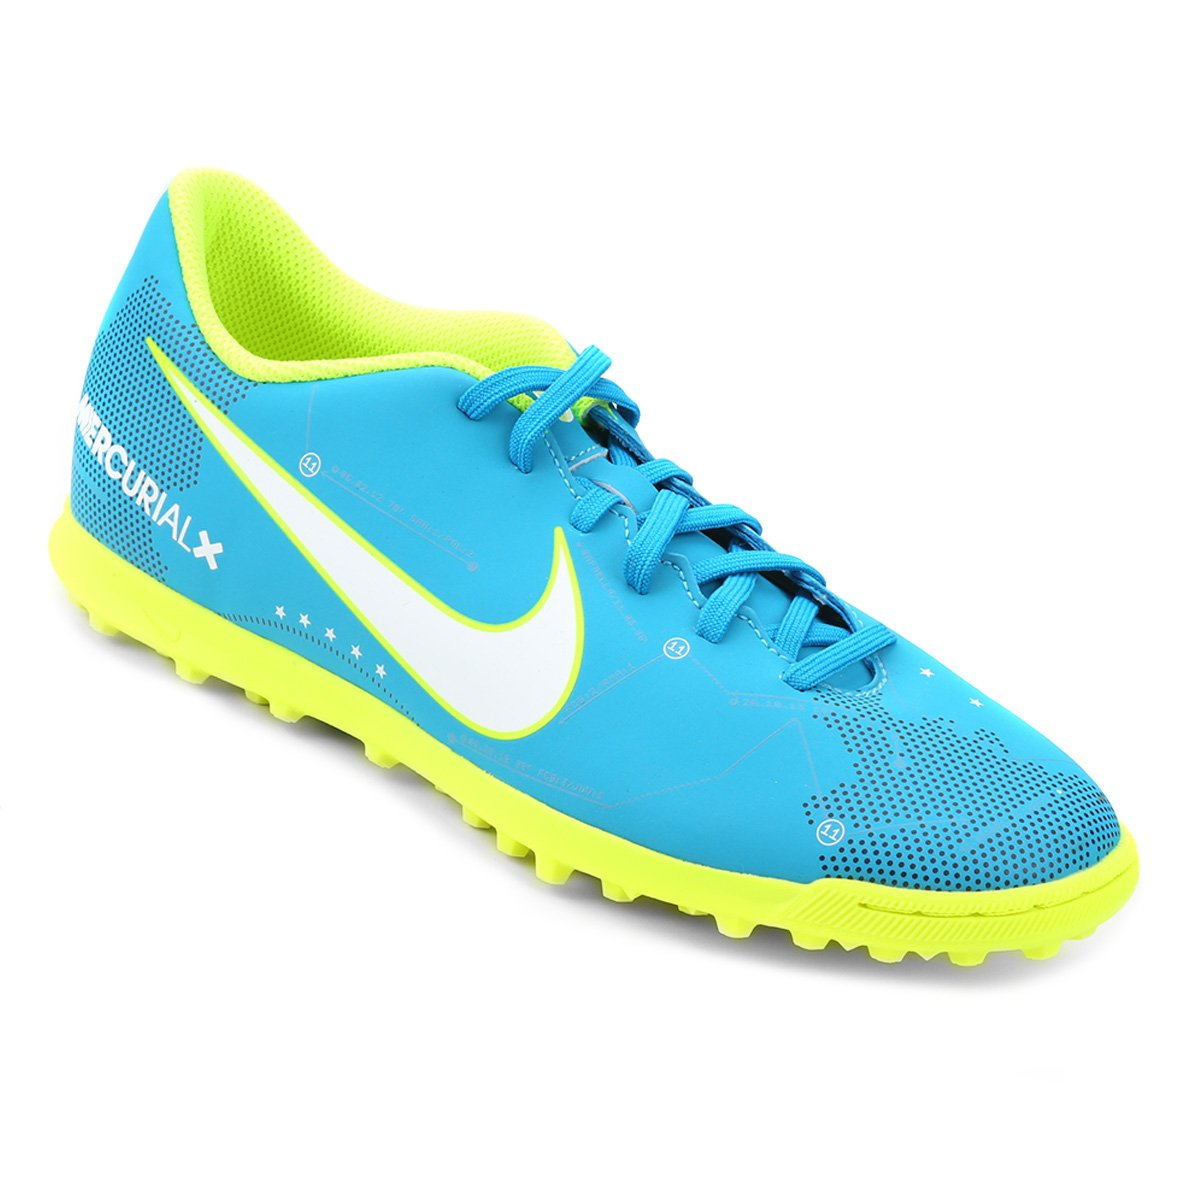 ... switzerland chuteira society nike mercurial vortex 3 neymar jr tf  masculina azulbranco 4a1b8 88be3 d3d37ba954df8